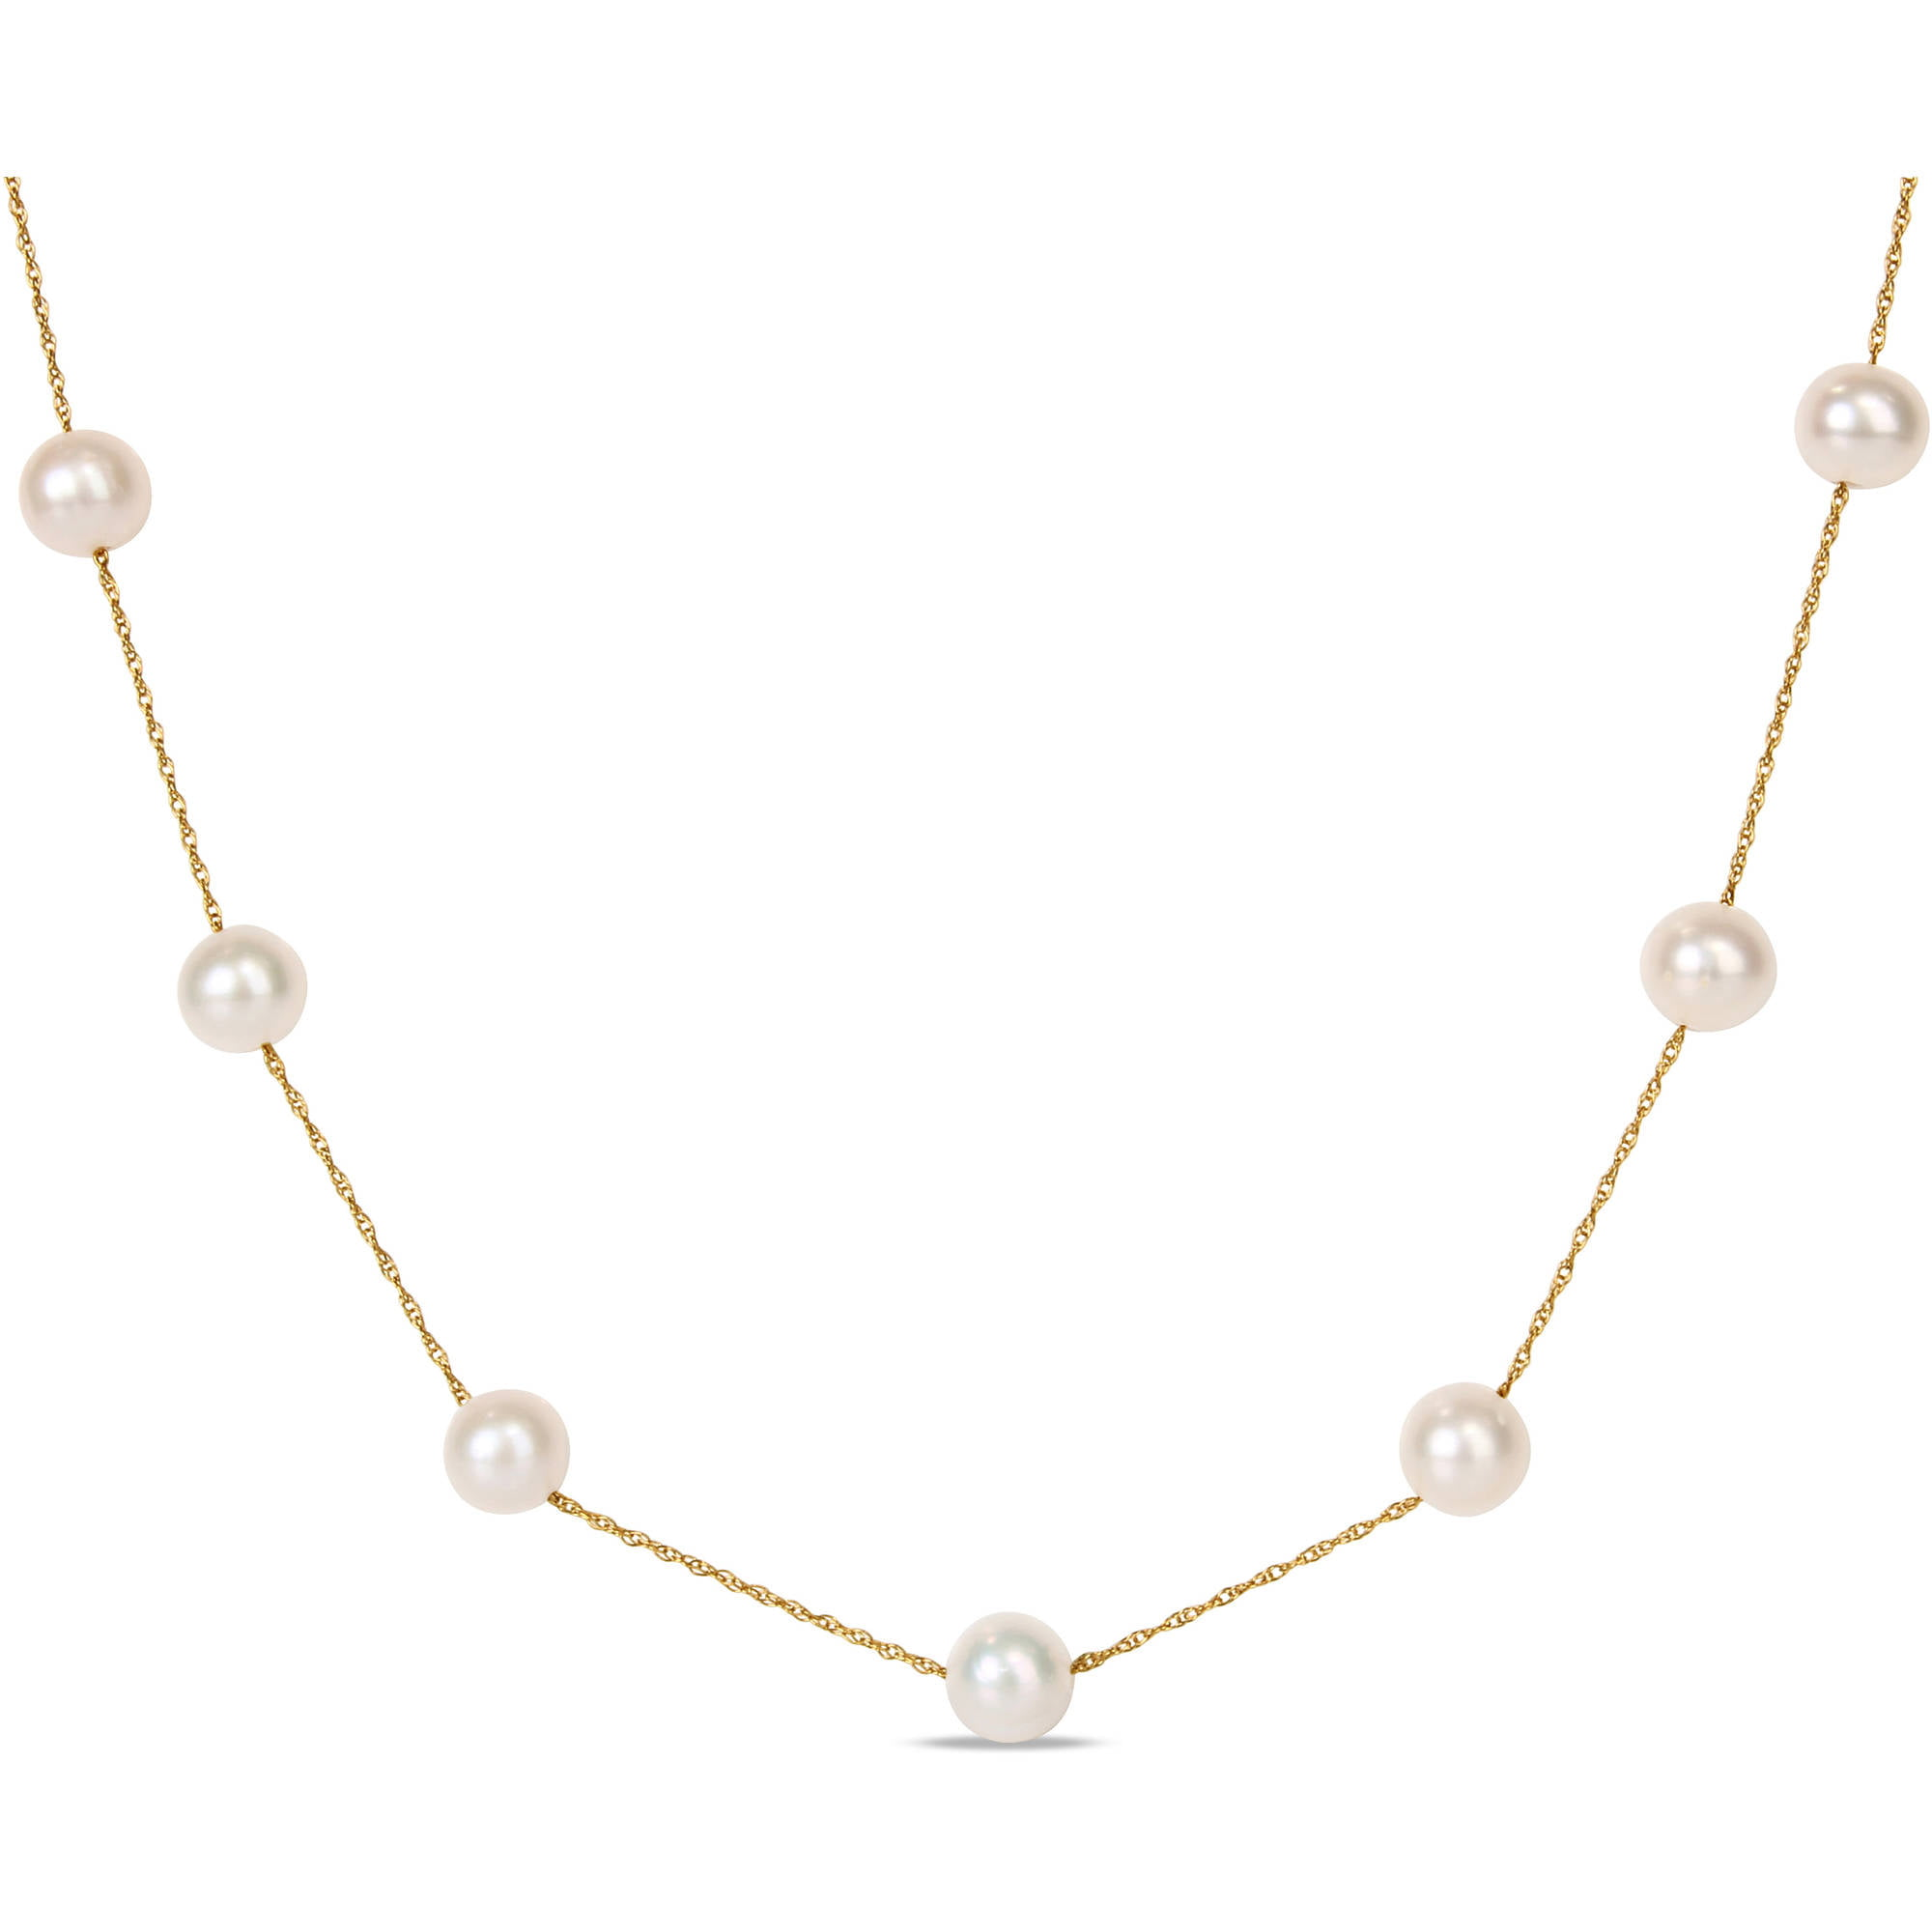 "Miabella 7-8mm White Cultured Freshwater Pearl 10kt Yellow Gold Tin-Cup Necklace, 17"" by Miabella"